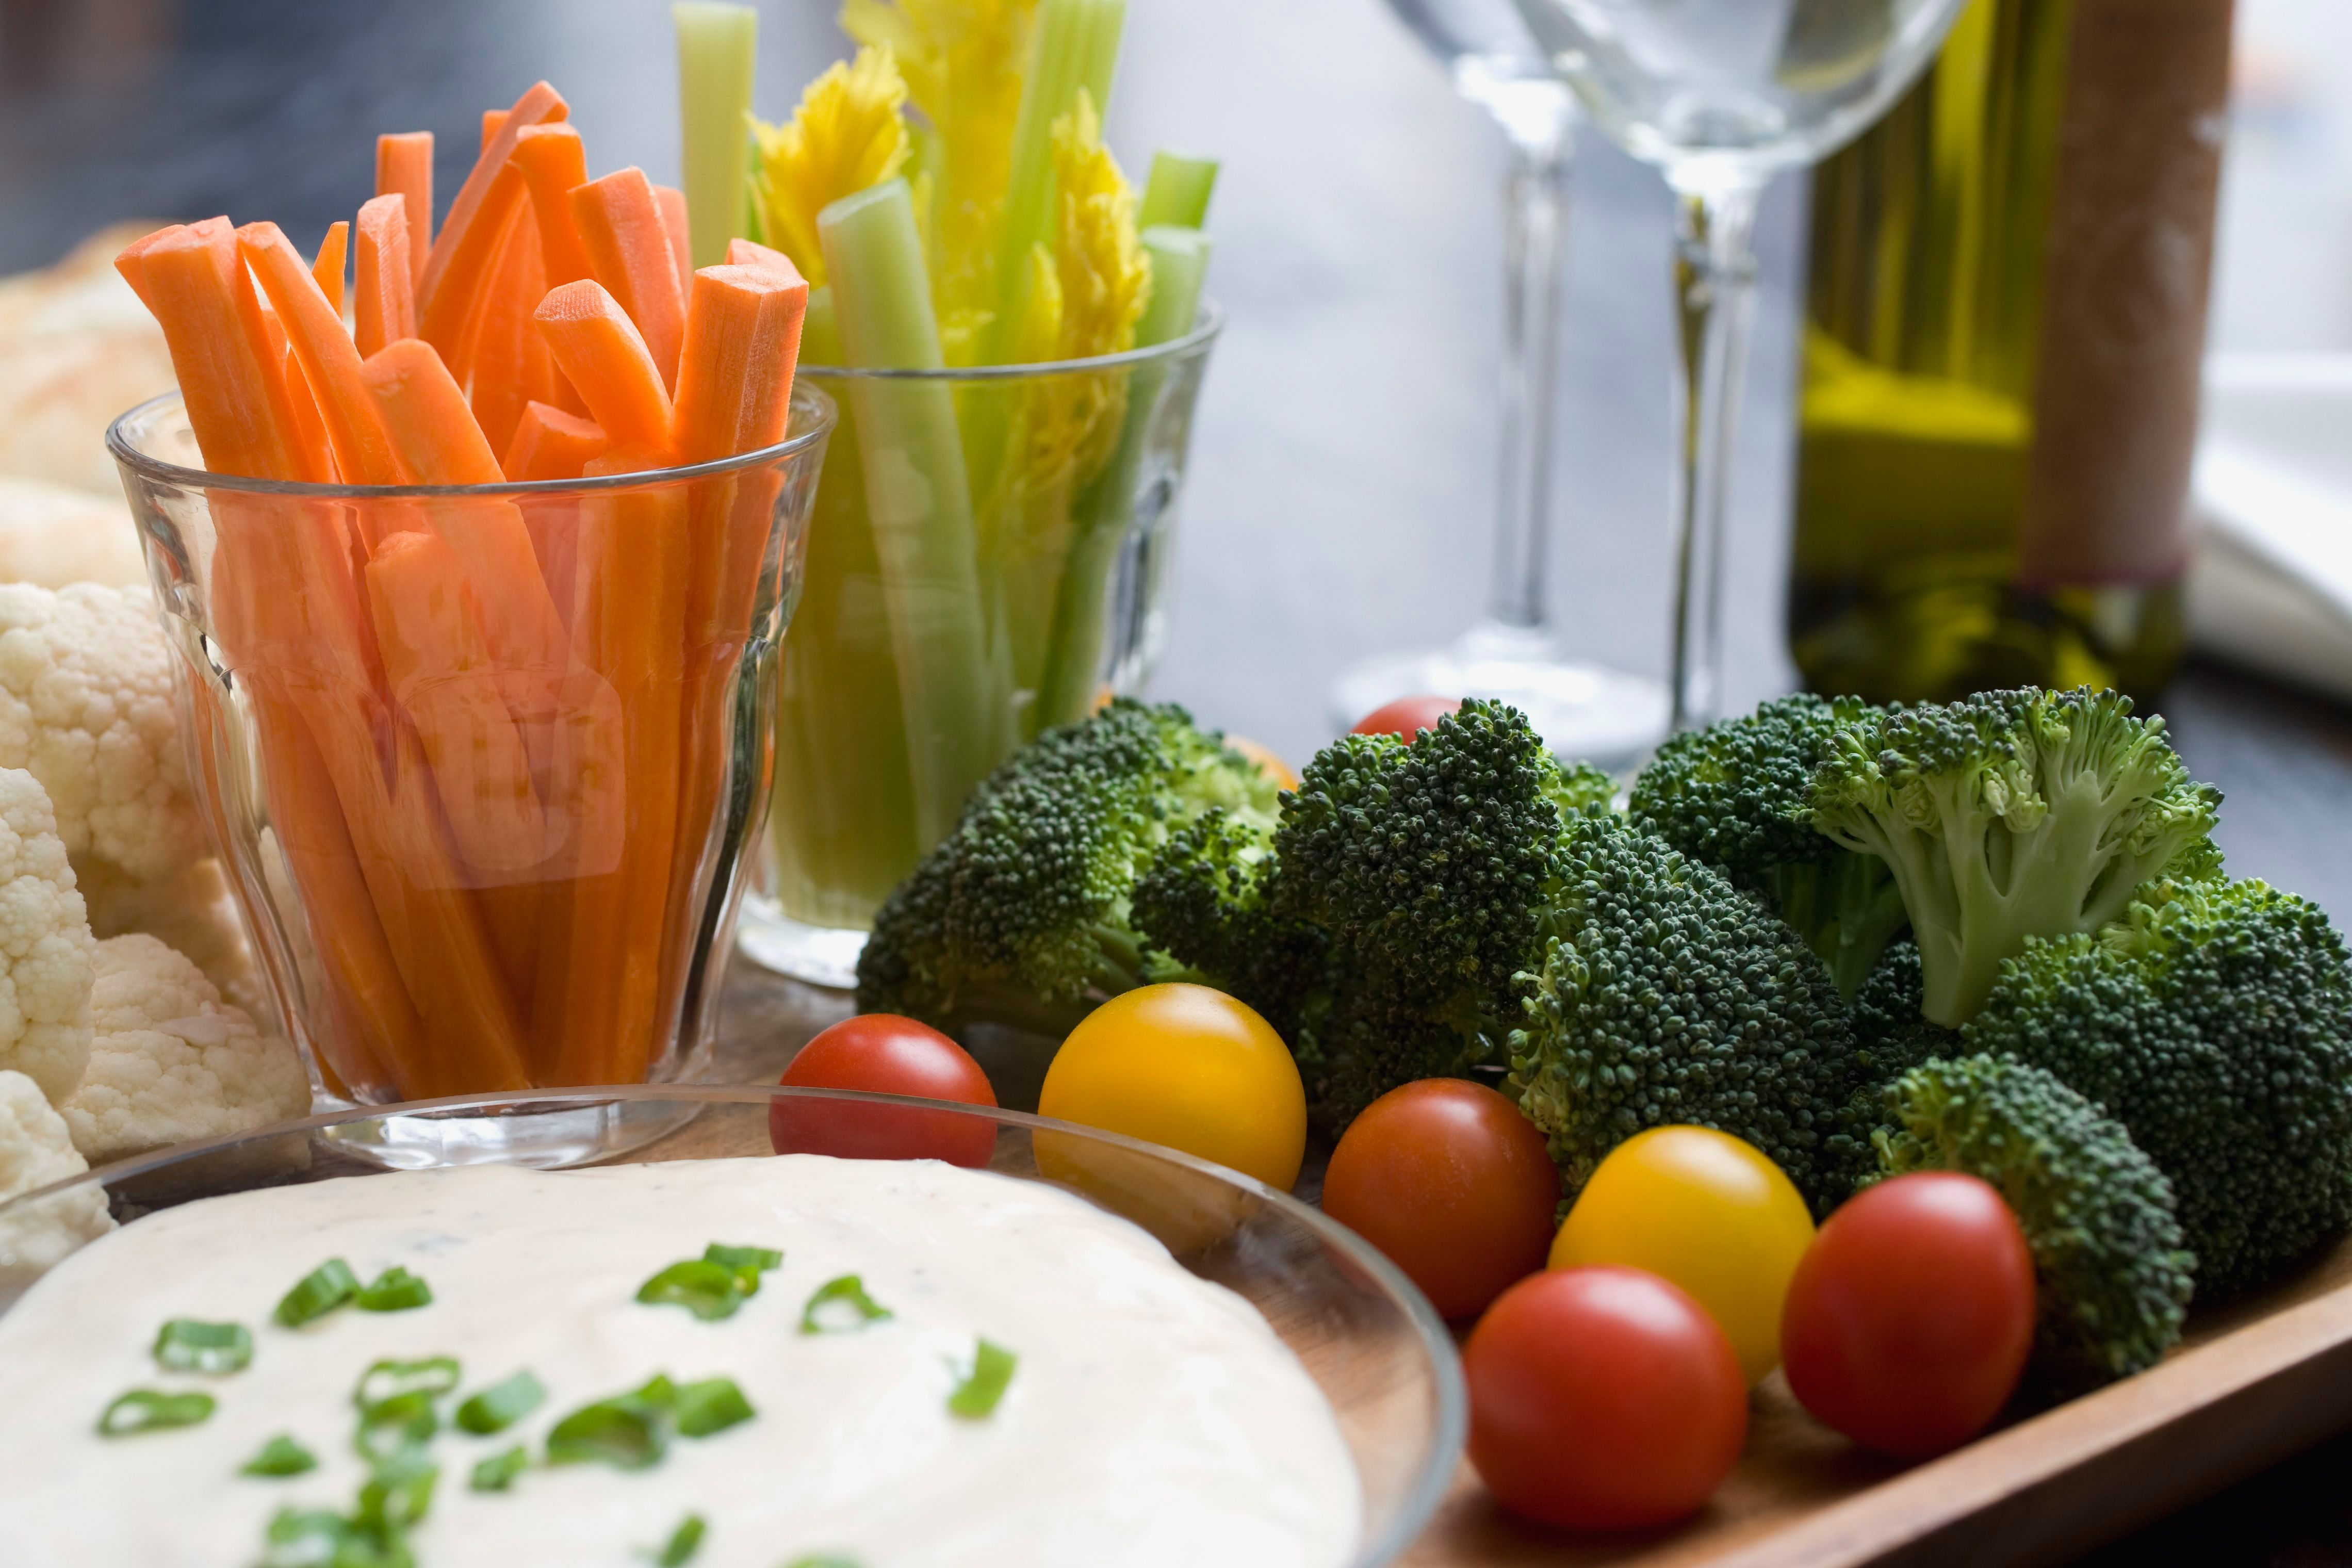 Blue Cheese Dip for Vegetables and Chicken Wings